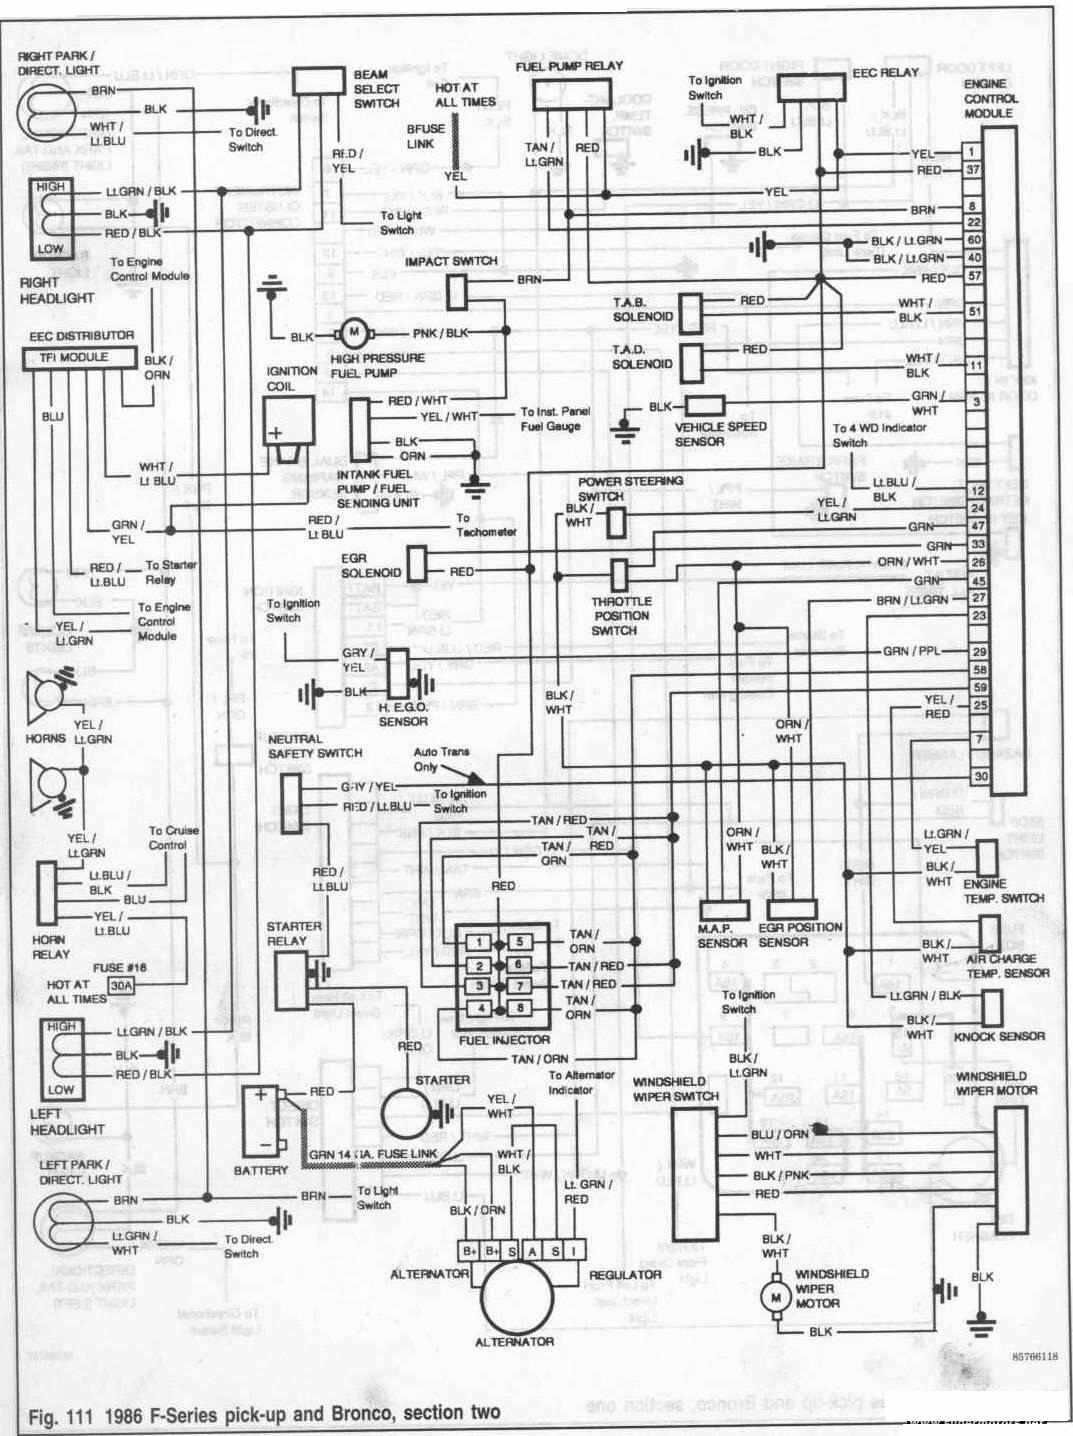 wiring diagram for 1978 ford bronco the wiring diagram 1985 1986 efi ground location ford bronco forum wiring diagram